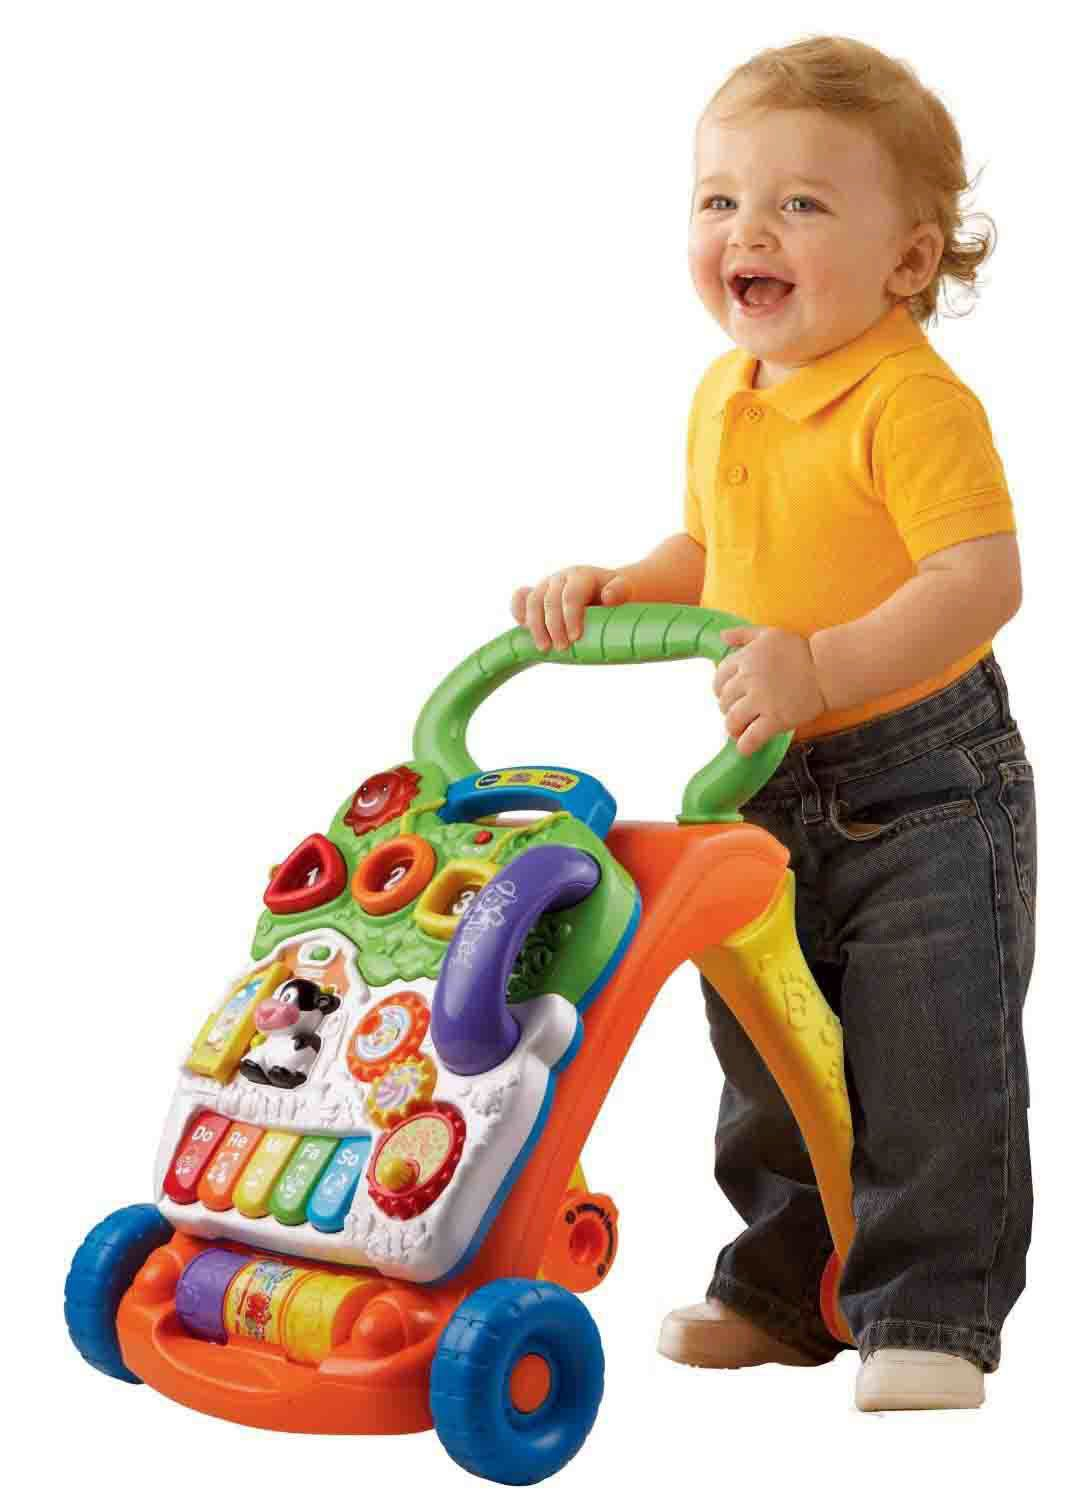 Walkers Folding Baby Walker Music Game Table Multifunction 2in1 Push Early Childhood Boy First Walkers With Wheels Toy 0-1 Years Attractive Designs;